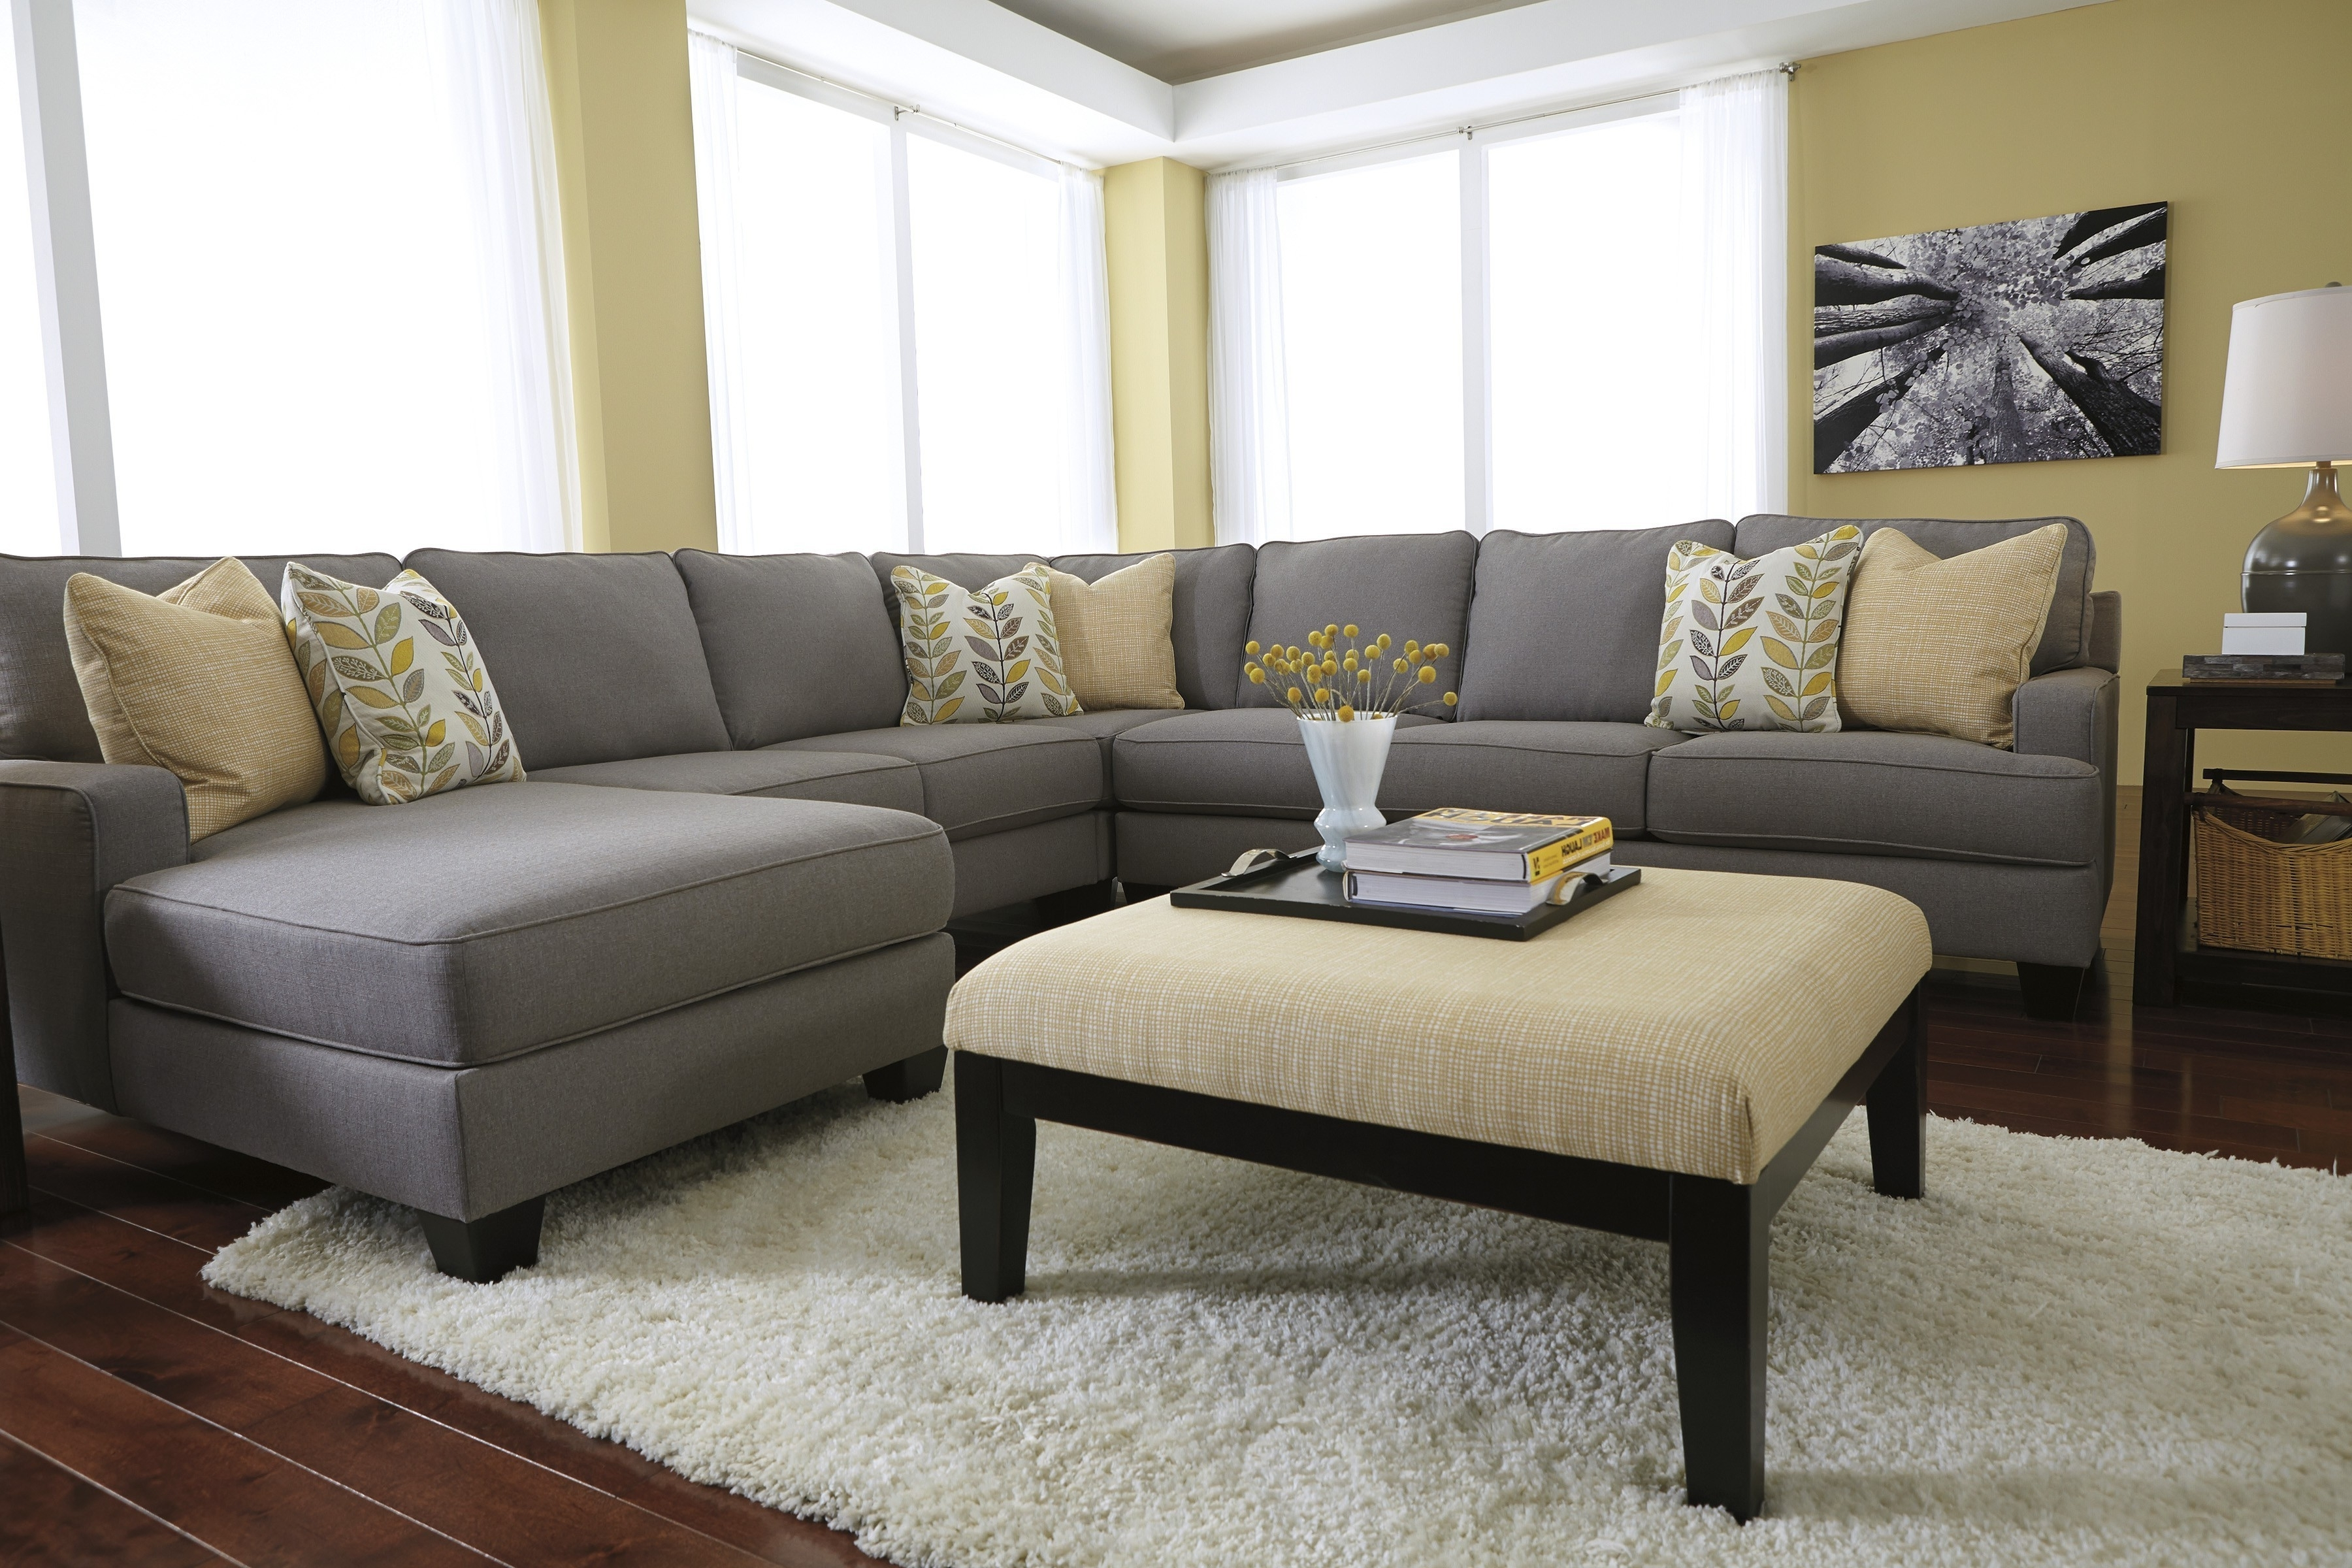 Fashionable Cool Perfect Light Grey Sectional Sofa 49 With Additional Small With Regard To Light Grey Sectional Sofas (View 20 of 20)